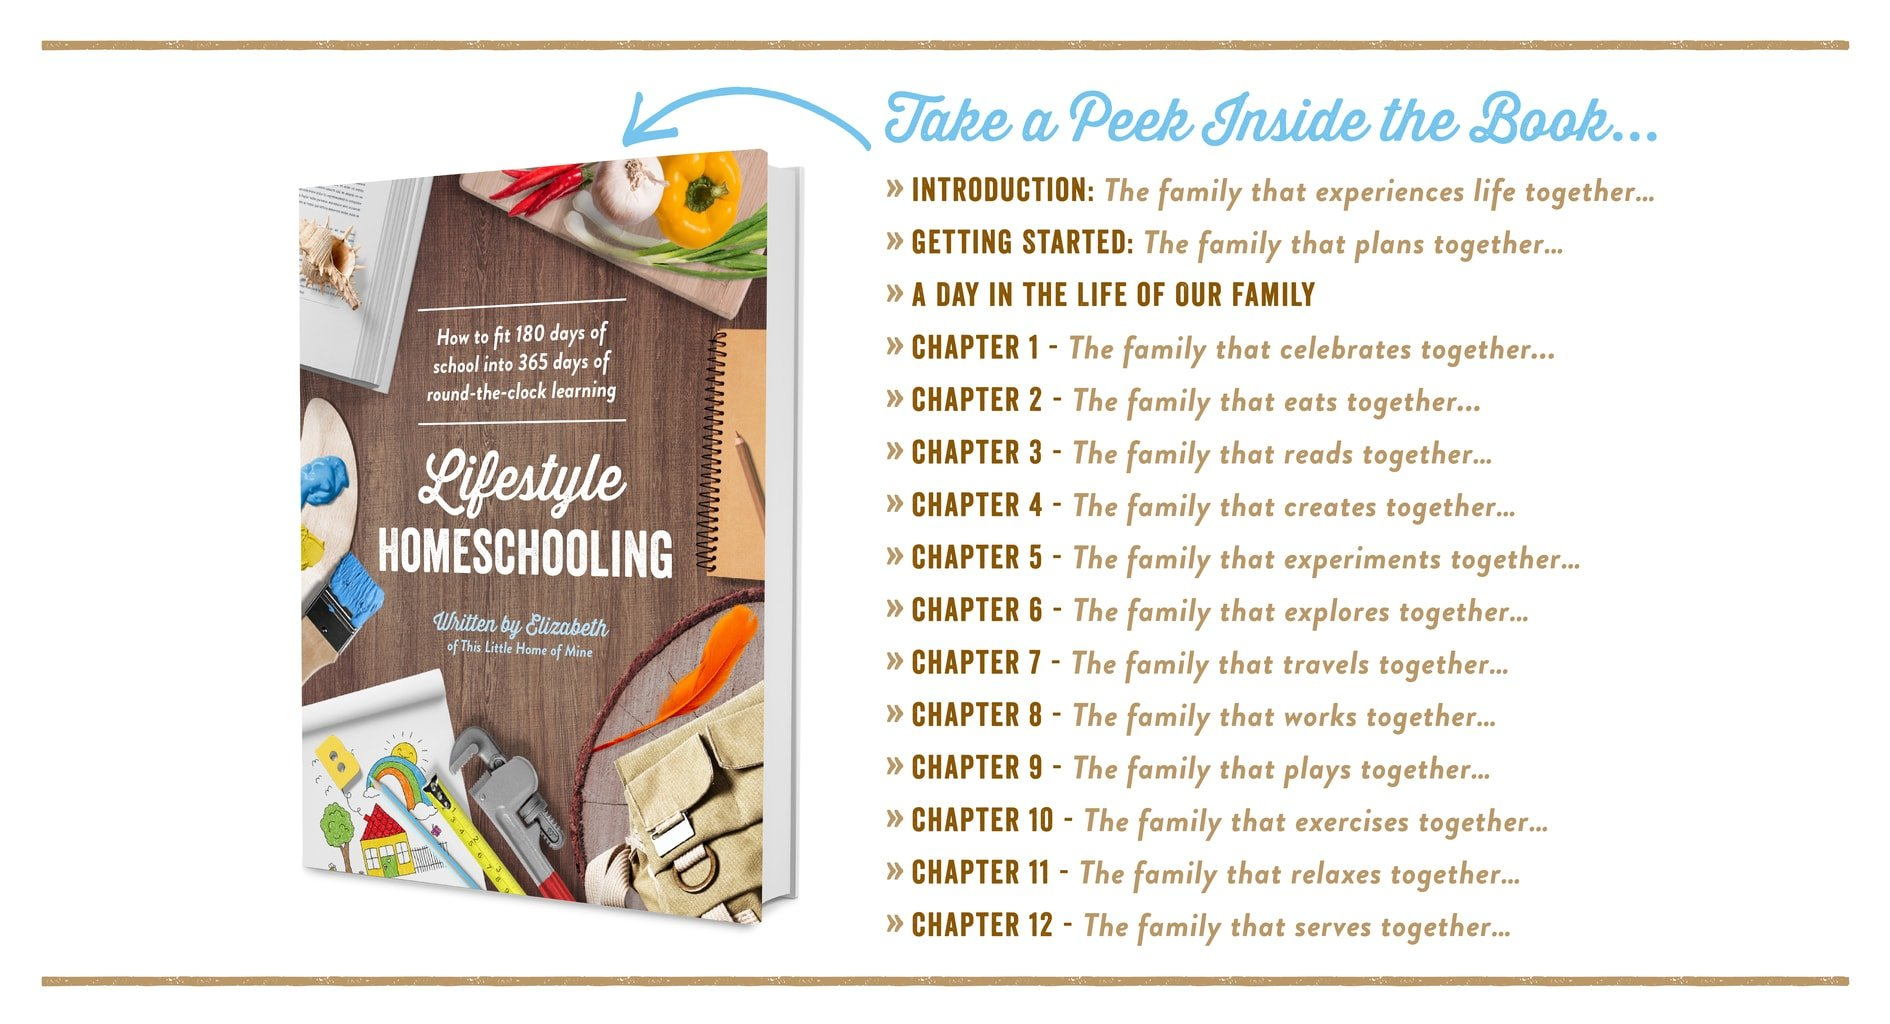 Lifestyle Homeschooling eBook - Take a Peek Inside - This Little Home of Mine